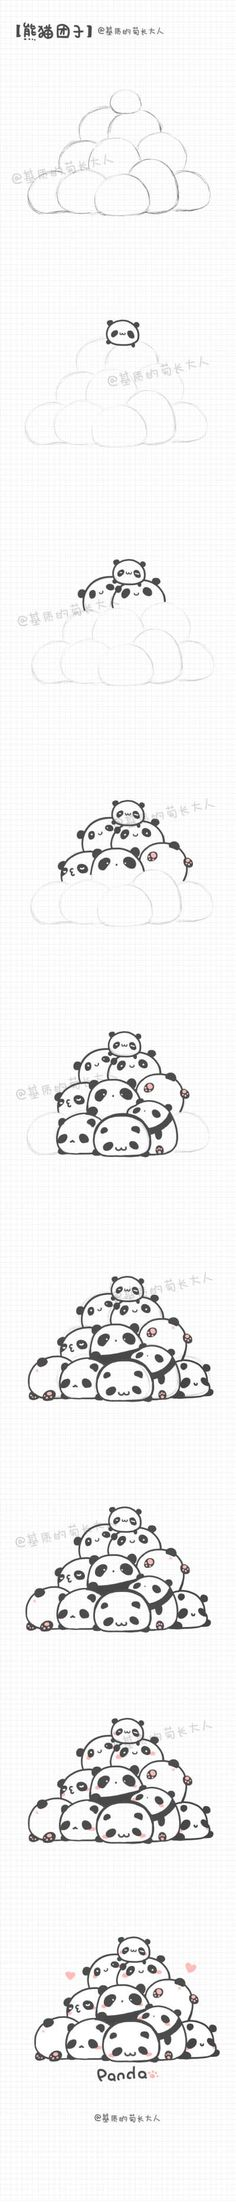 堆糖-美好生活研究所 Kawaii Drawings, Doodle Drawings, Animal Drawings, Doodle Art, Easy Drawings, Kawaii Doodles, Kawaii Art, Drawing For Kids, Drawing Tips